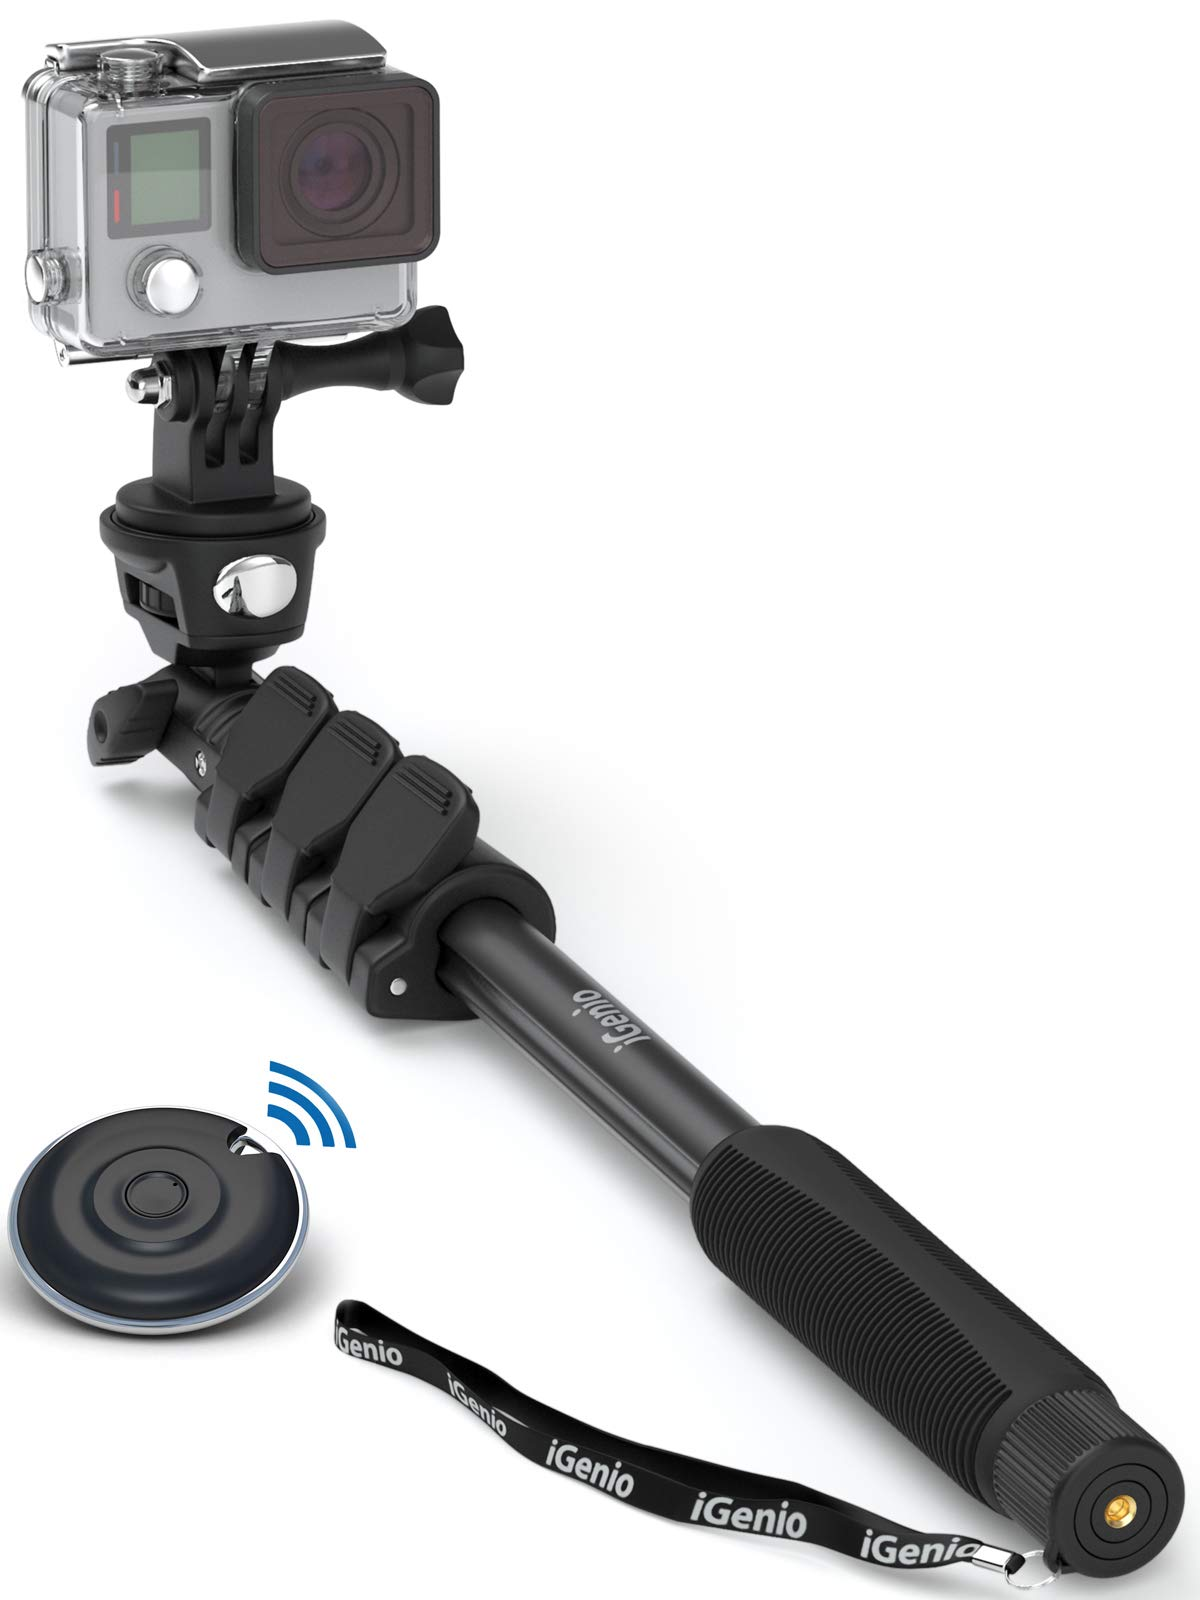 Professional 10-in-1 Monopod Selfie Stick for All GoPro Hero, Action Cameras, Cellphones, Digital Compacts with Bluetooth Remote Shutter - Extends 15''- 47'', Weatherproof Shockproof - Take It Anywhere